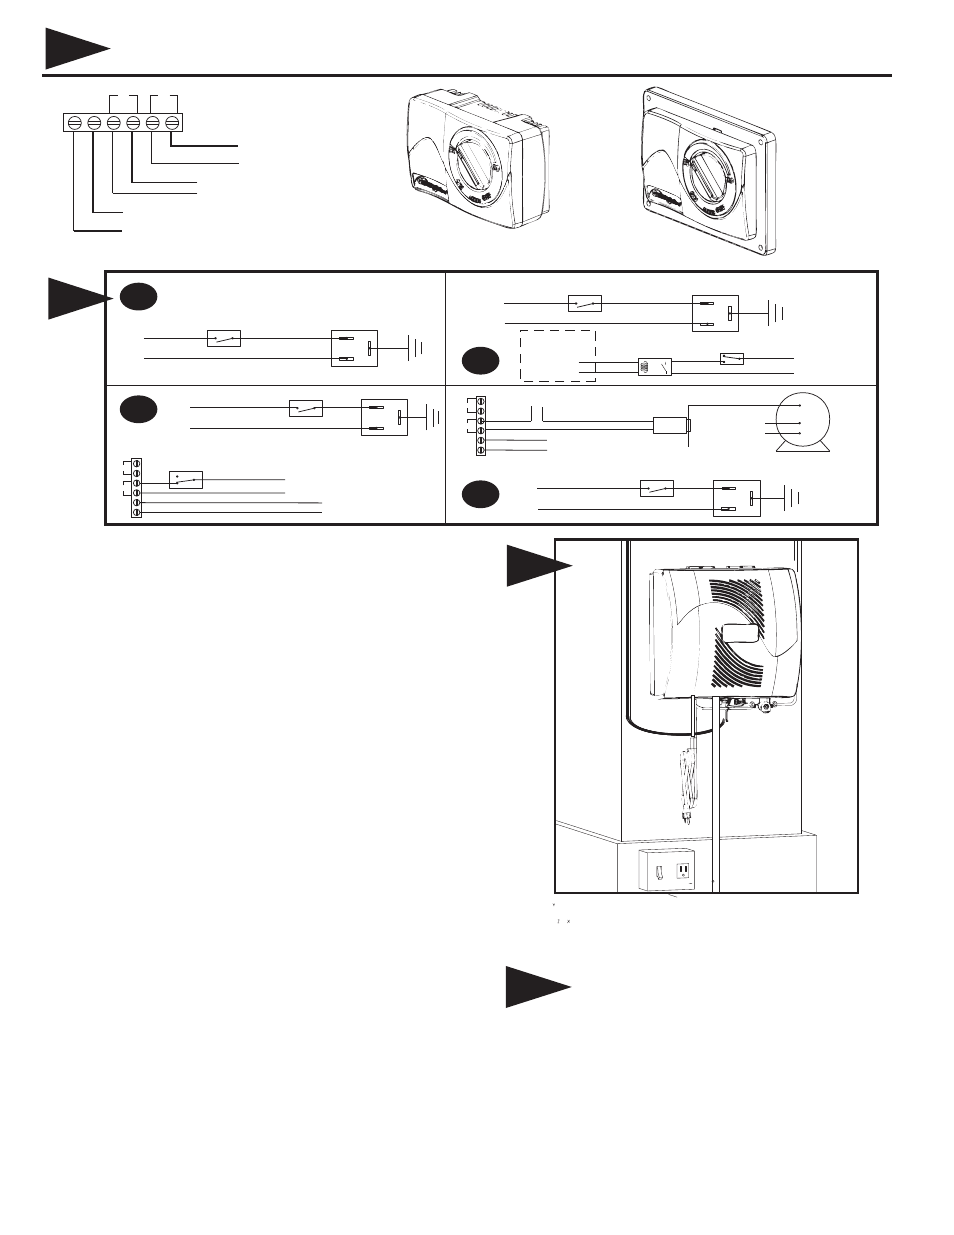 medium resolution of instructions for wiring humidifier gfx3 electronic humidistat 6a 6c 6b generalaire 1000 series elite manuel d utilisation page 2 12